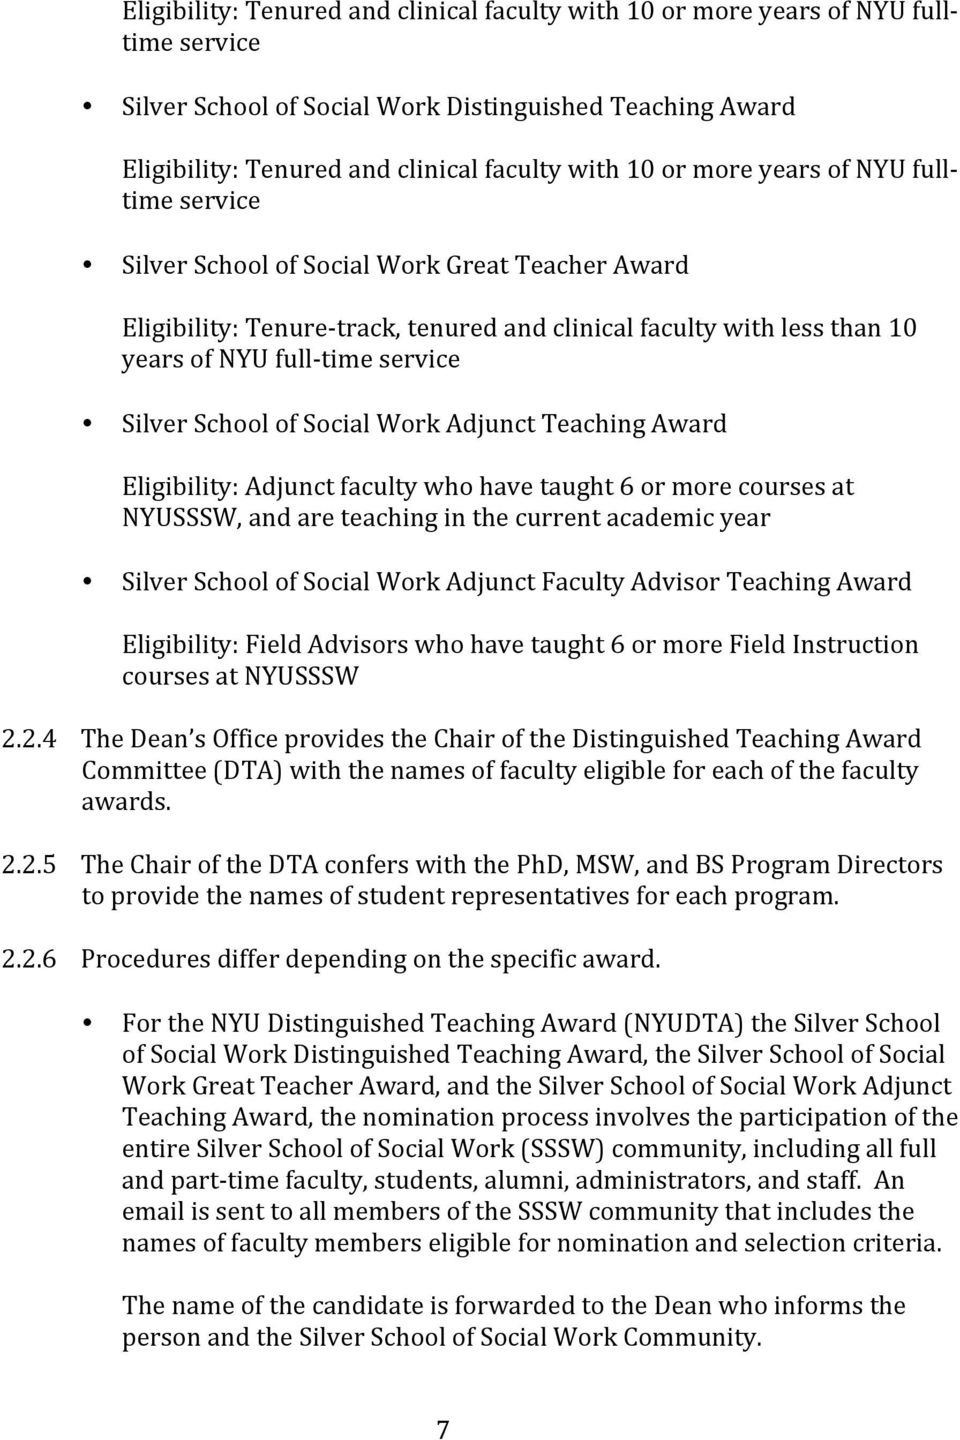 Silver School of Social Work Adjunct Teaching Award Eligibility: Adjunct faculty who have taught 6 or more courses at NYUSSSW, and are teaching in the current academic year Silver School of Social